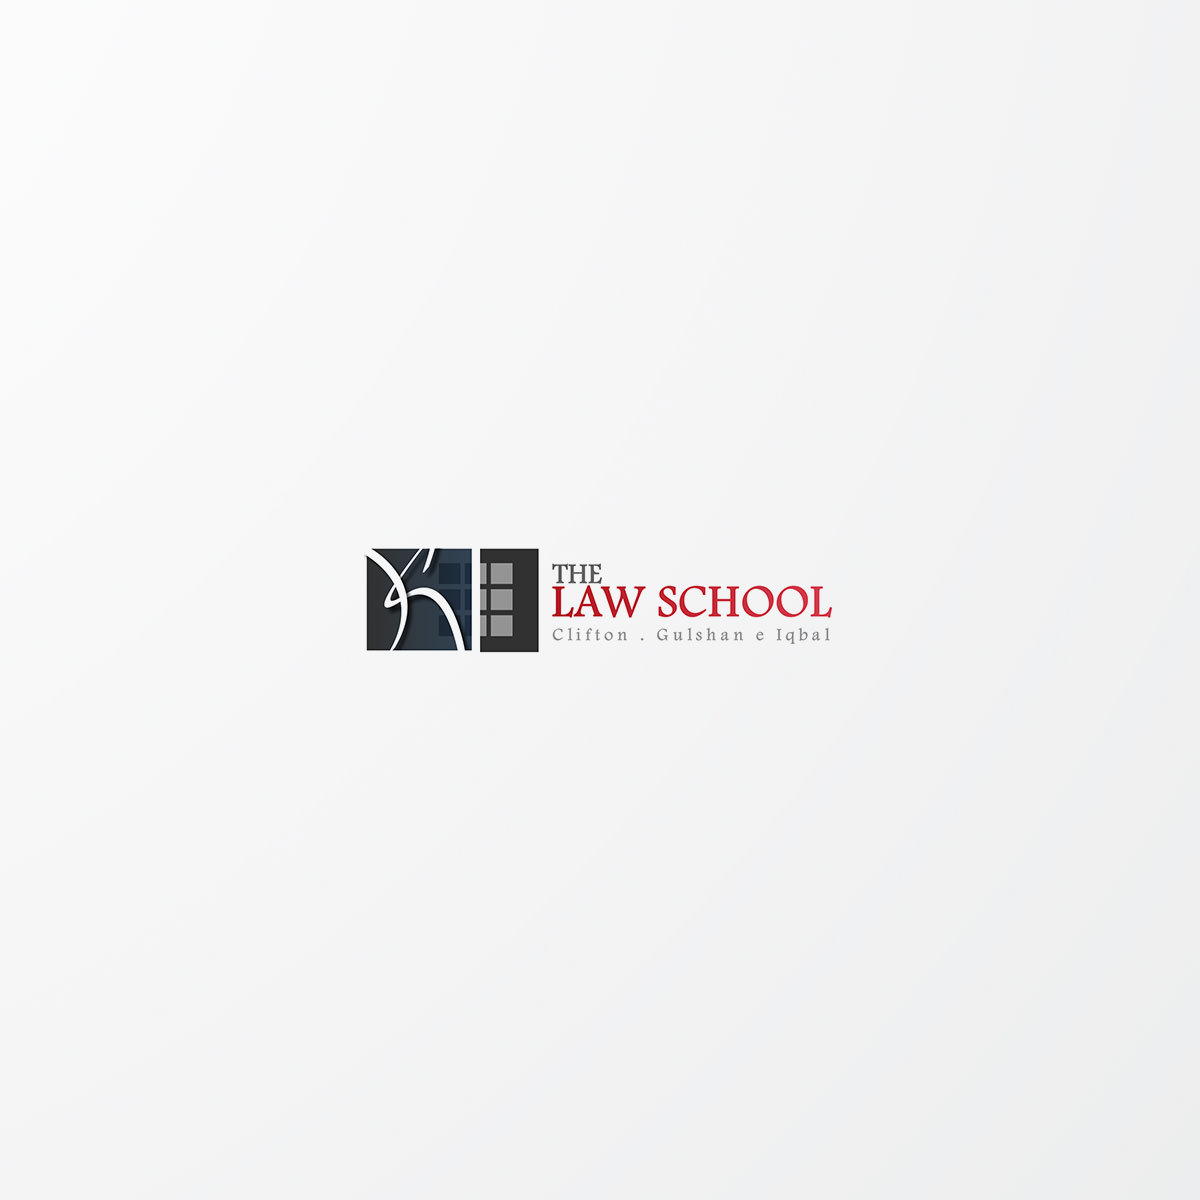 The-Law-School